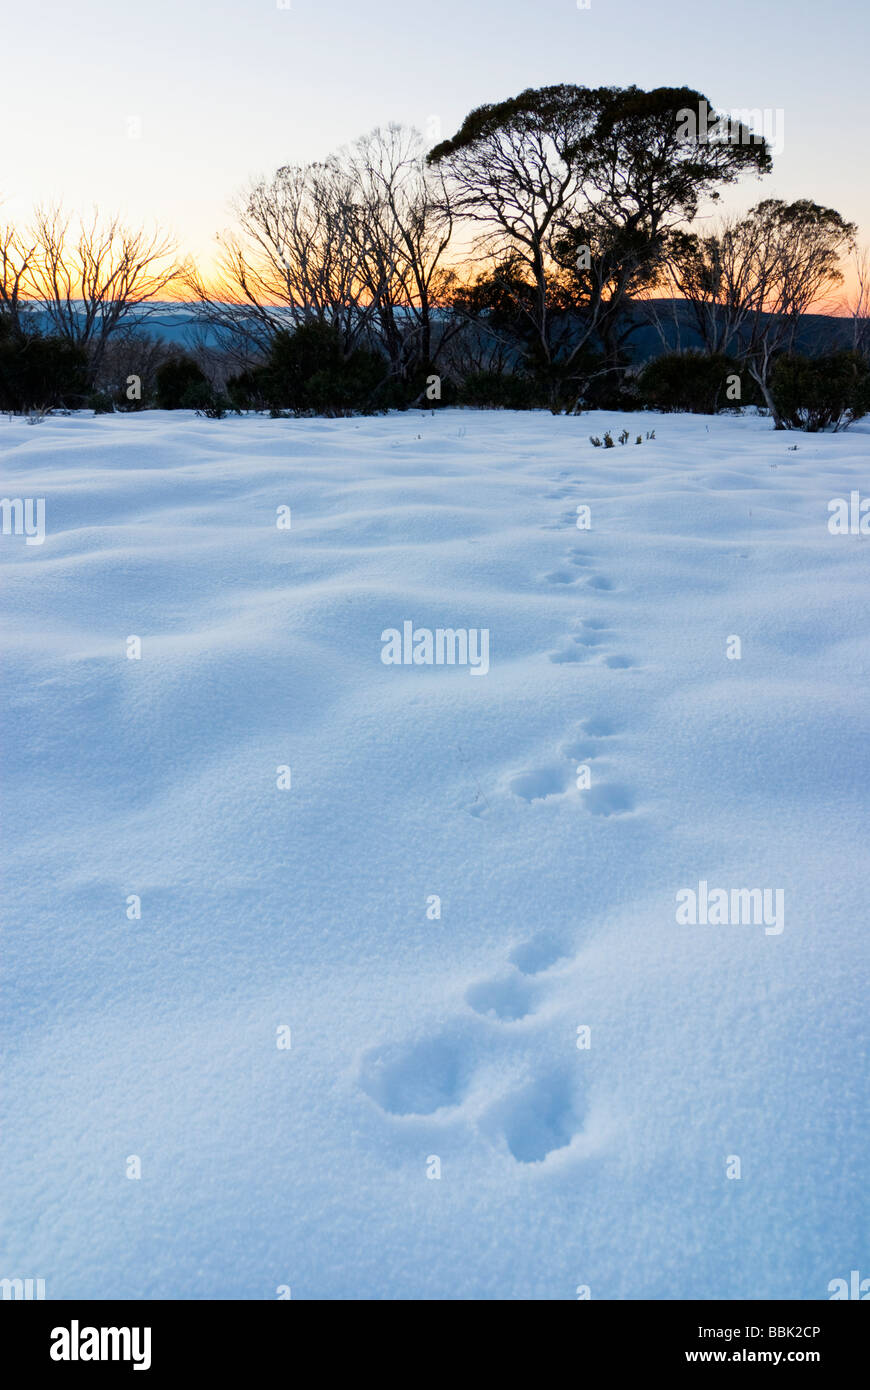 Tracks in snow at dawn - Stock Image